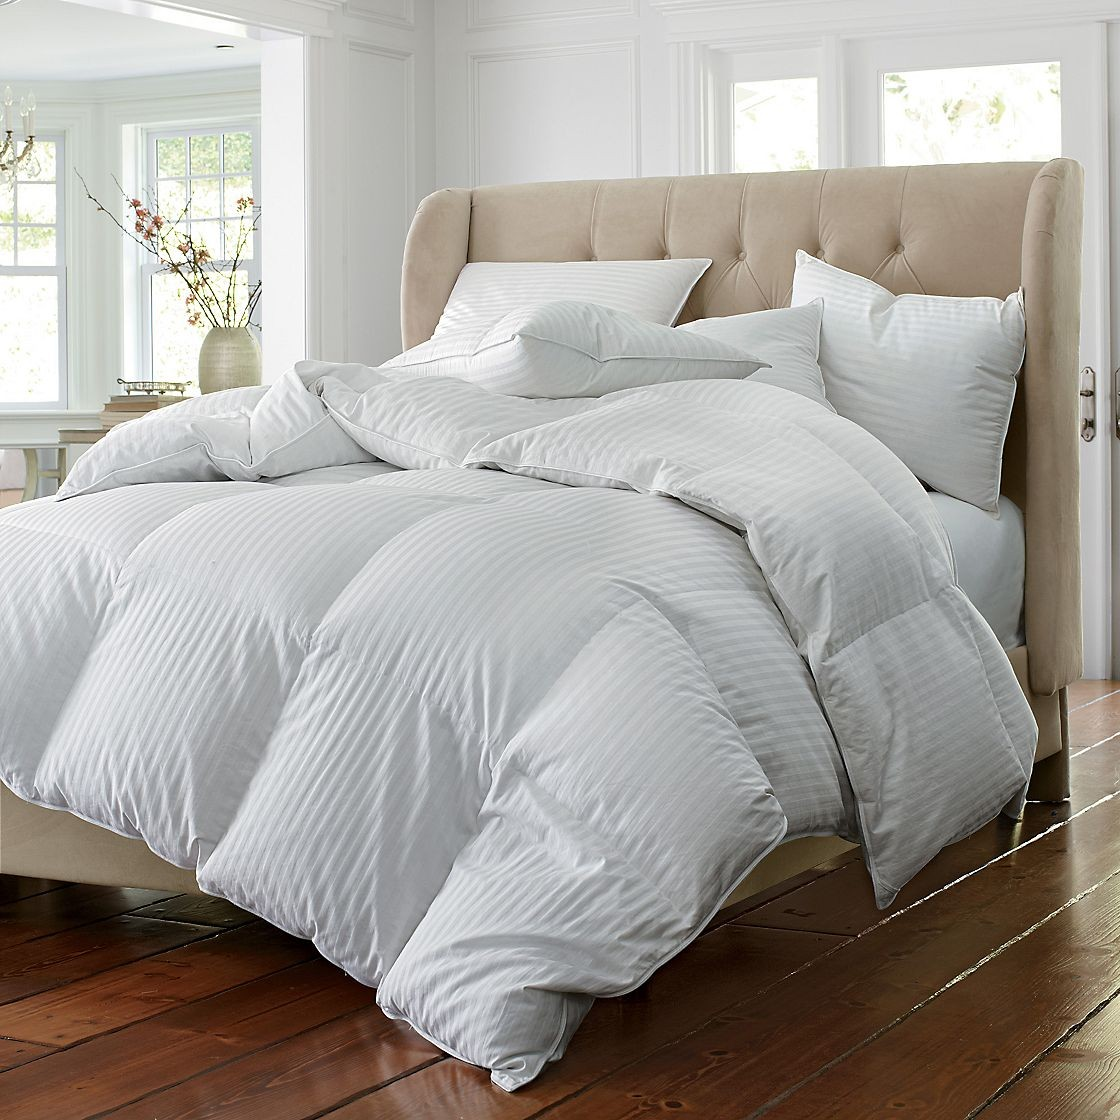 How To Choose Down Comforter Sets Home Improvement